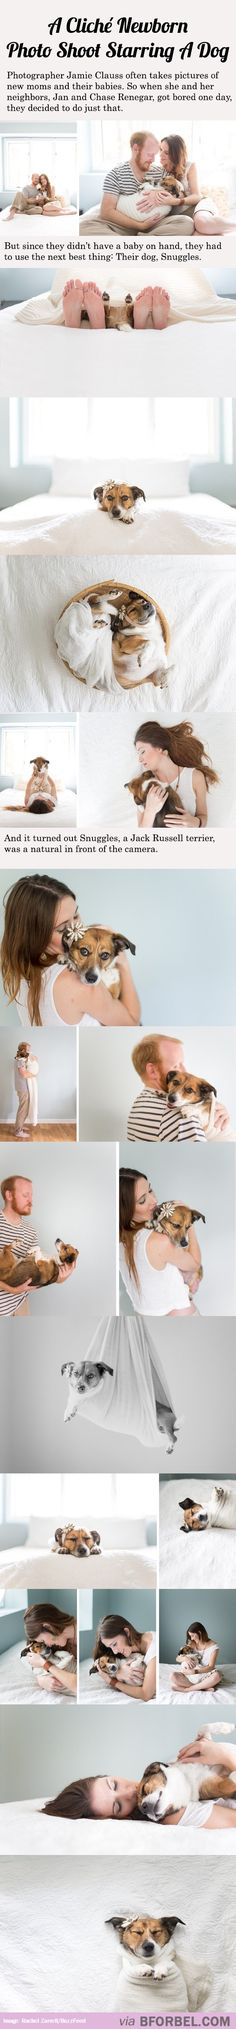 20 Cliche Newborn Photos Starring A Dog...I am dying. This is so me. Jordan would absolutely hate this hahah